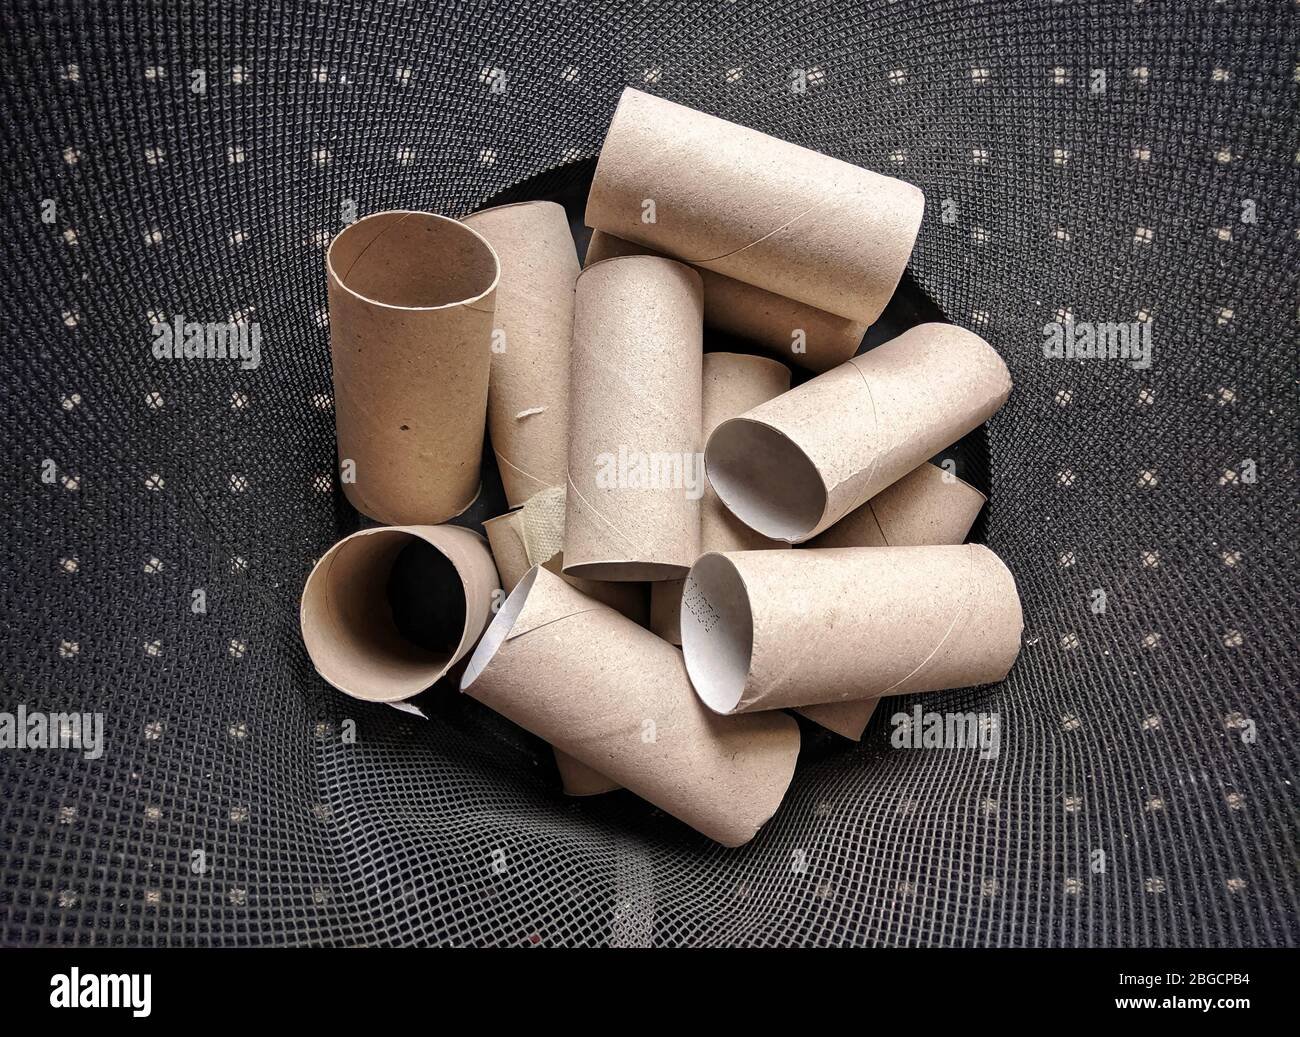 Munich, Bavaria, Germany. 21st Apr, 2020. Discarded toilet paper rolls in a recycling basket during the Coronavirus crisis in Germany where shoppers raided supermarkets and other shops for supplies, such as toilet paper and pasta. These shoppers were called ''hamsters'' in German. Credit: Sachelle Babbar/ZUMA Wire/Alamy Live News Stock Photo